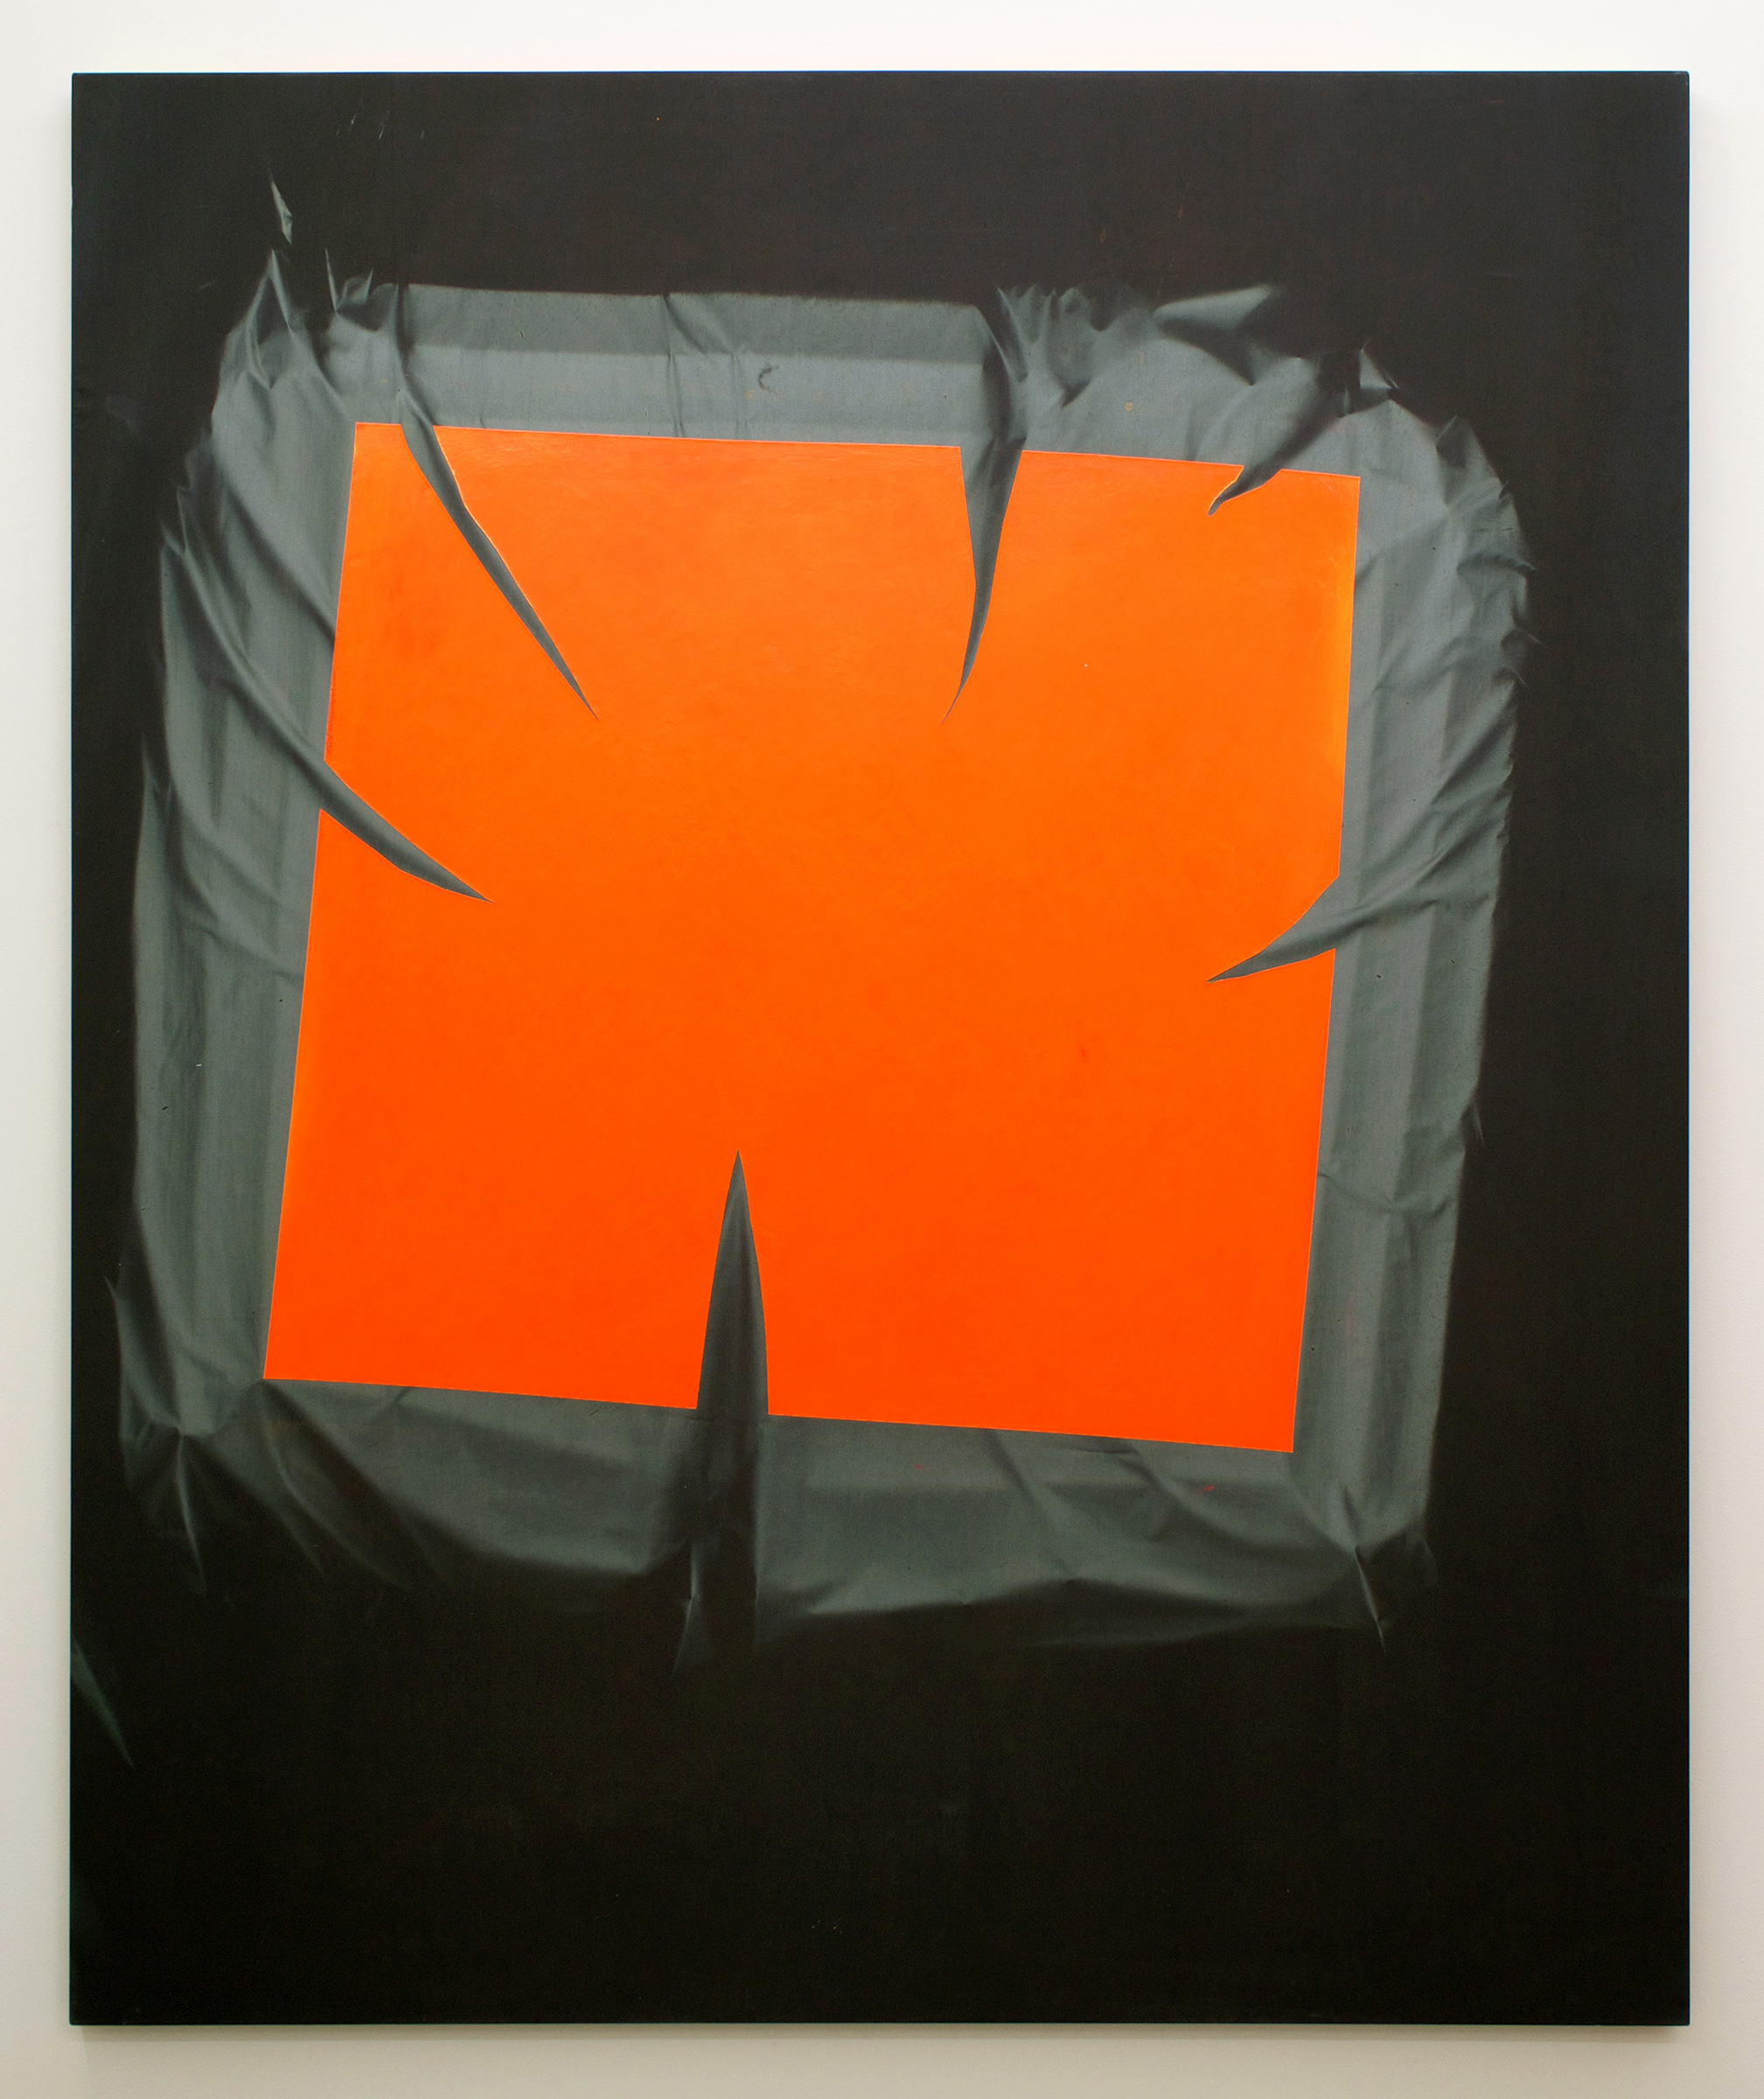 """CHRIS DUNCAN   Skylight – Orange & Gray (Fall-Spring 2016) Six-Month Exposure/Oakland , 2016, sun, time and acrylic on fabric, 68"""" x 55 3/4"""""""